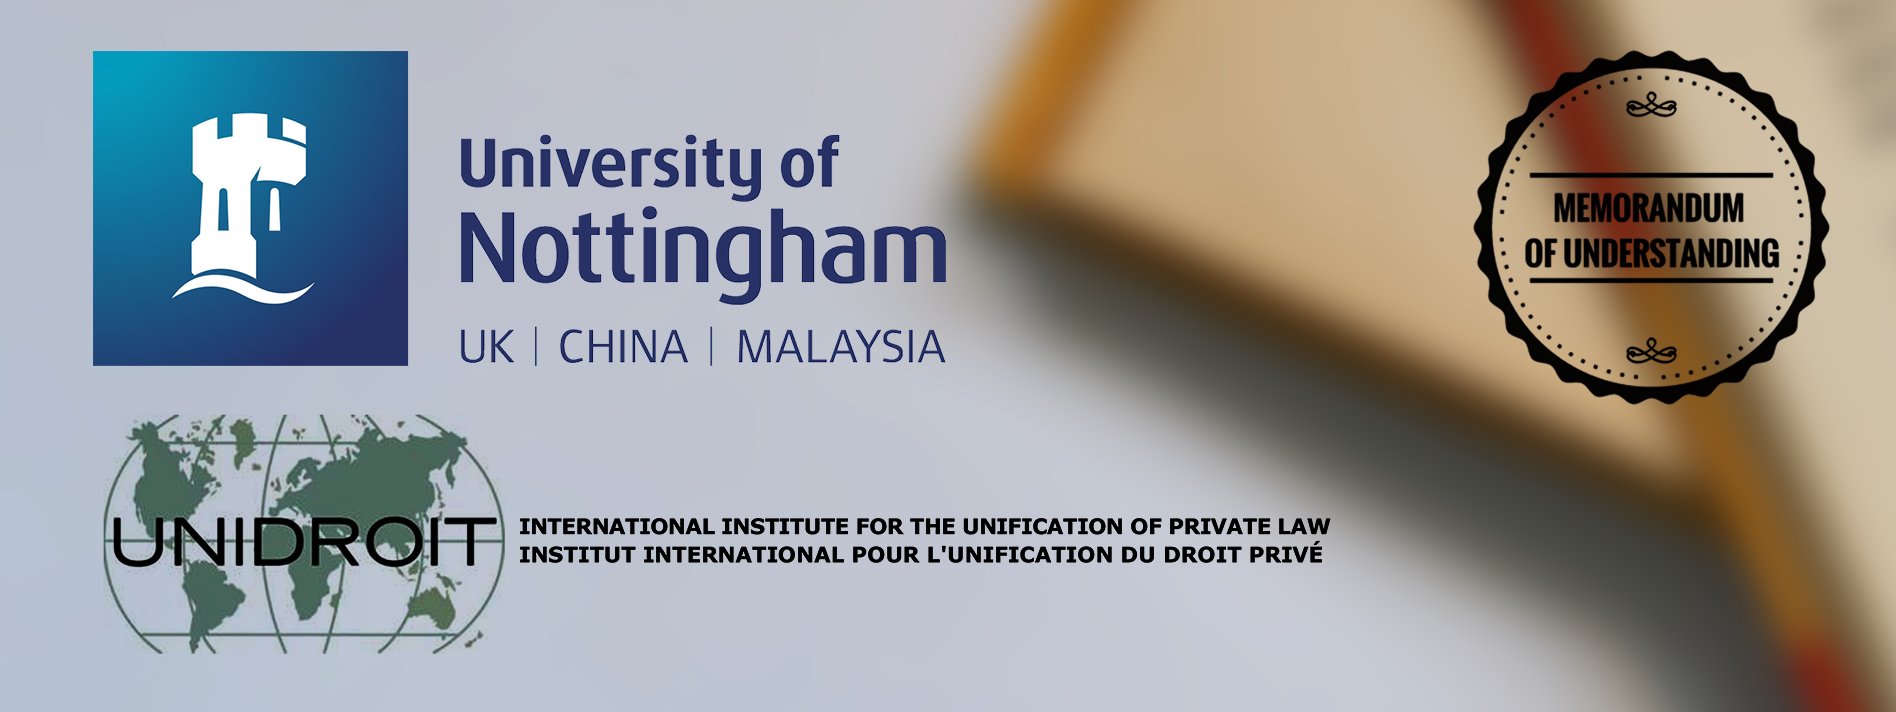 UNIDROIT SIGNS MOU WITH  THE COMMERCIAL LAW CENTRE OF THE UNIVERSITY OF NOTTINGHAM SCHOOL OF LAW